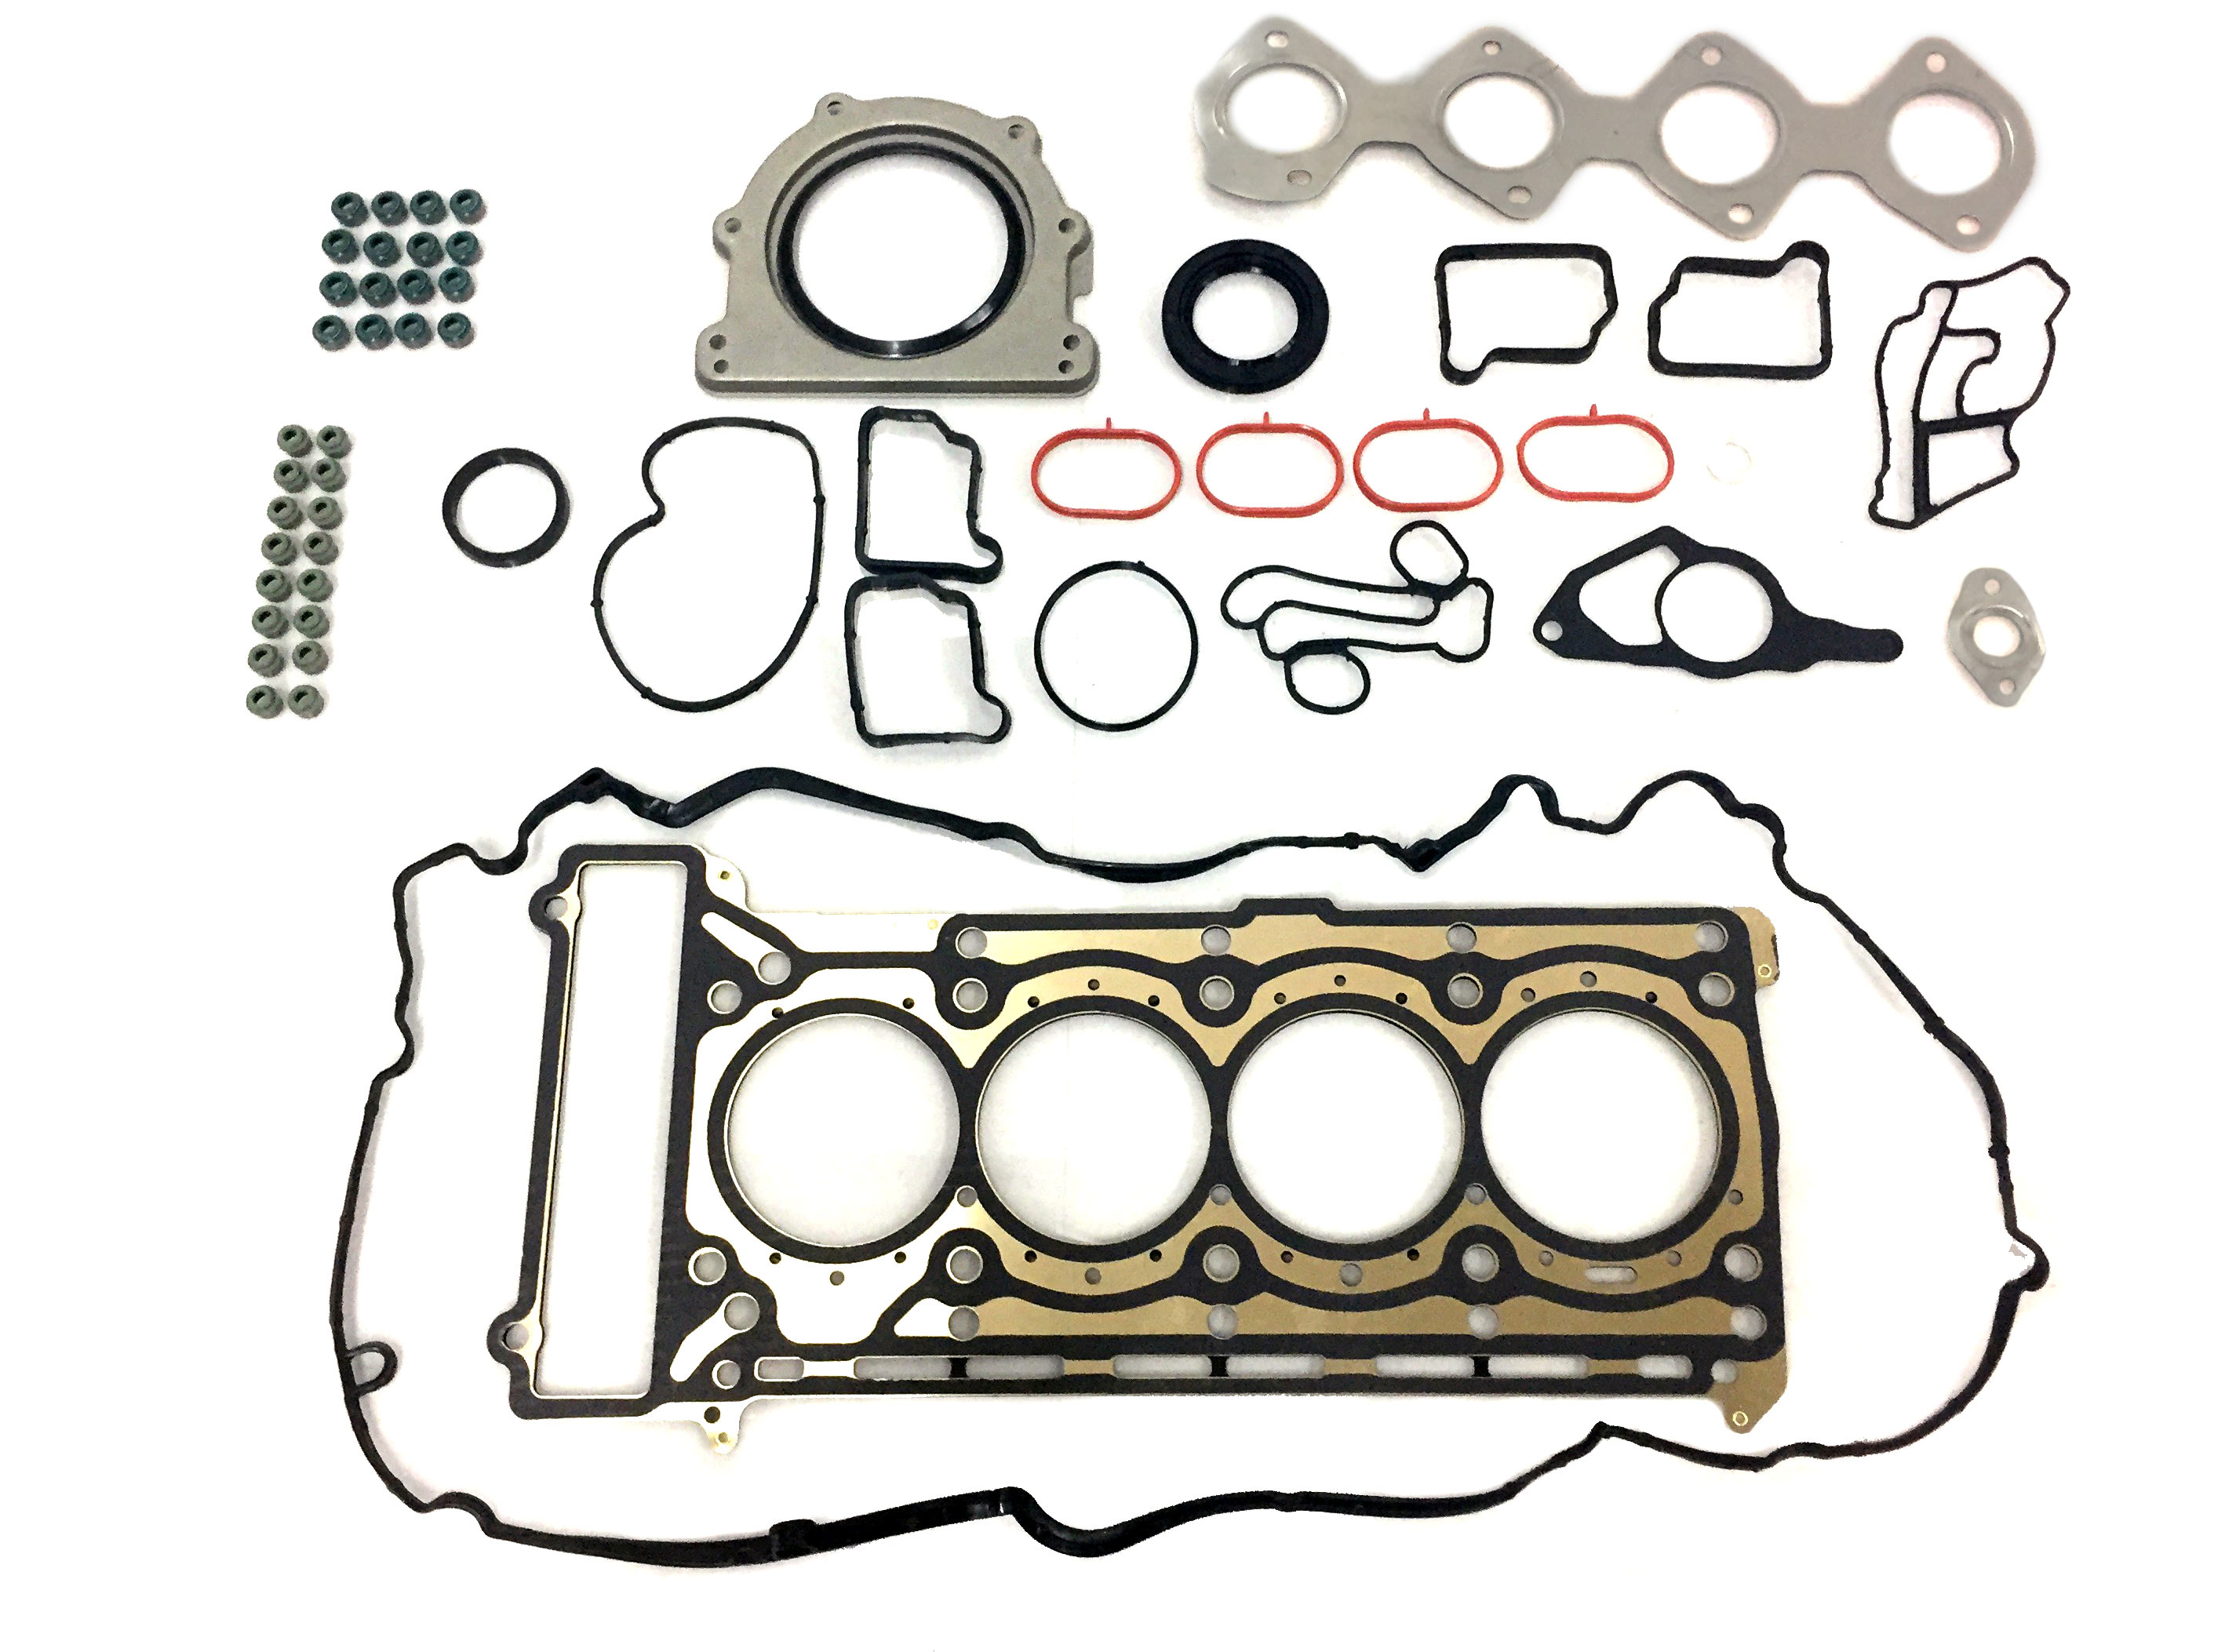 Cylinder head gasket set for Mercedes-Benz of 1.8 CGI 271.860 NEW